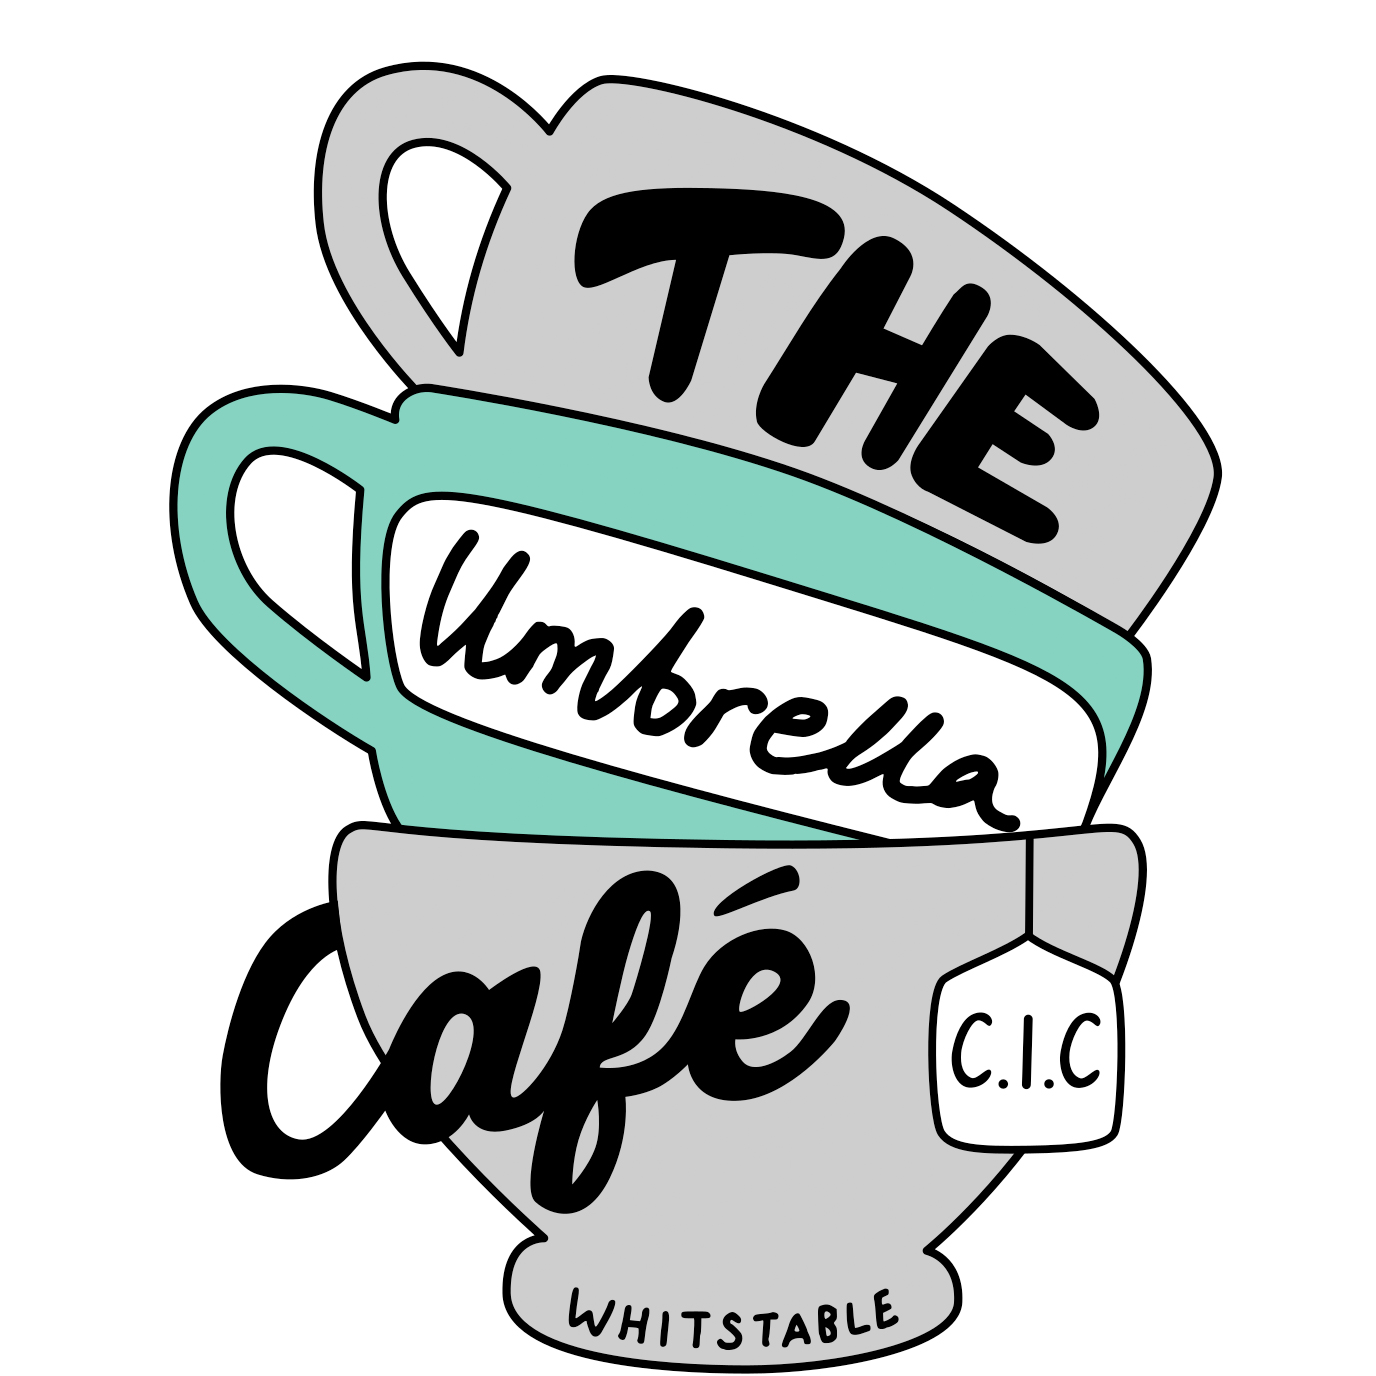 Umbrella Cafe Whitstable